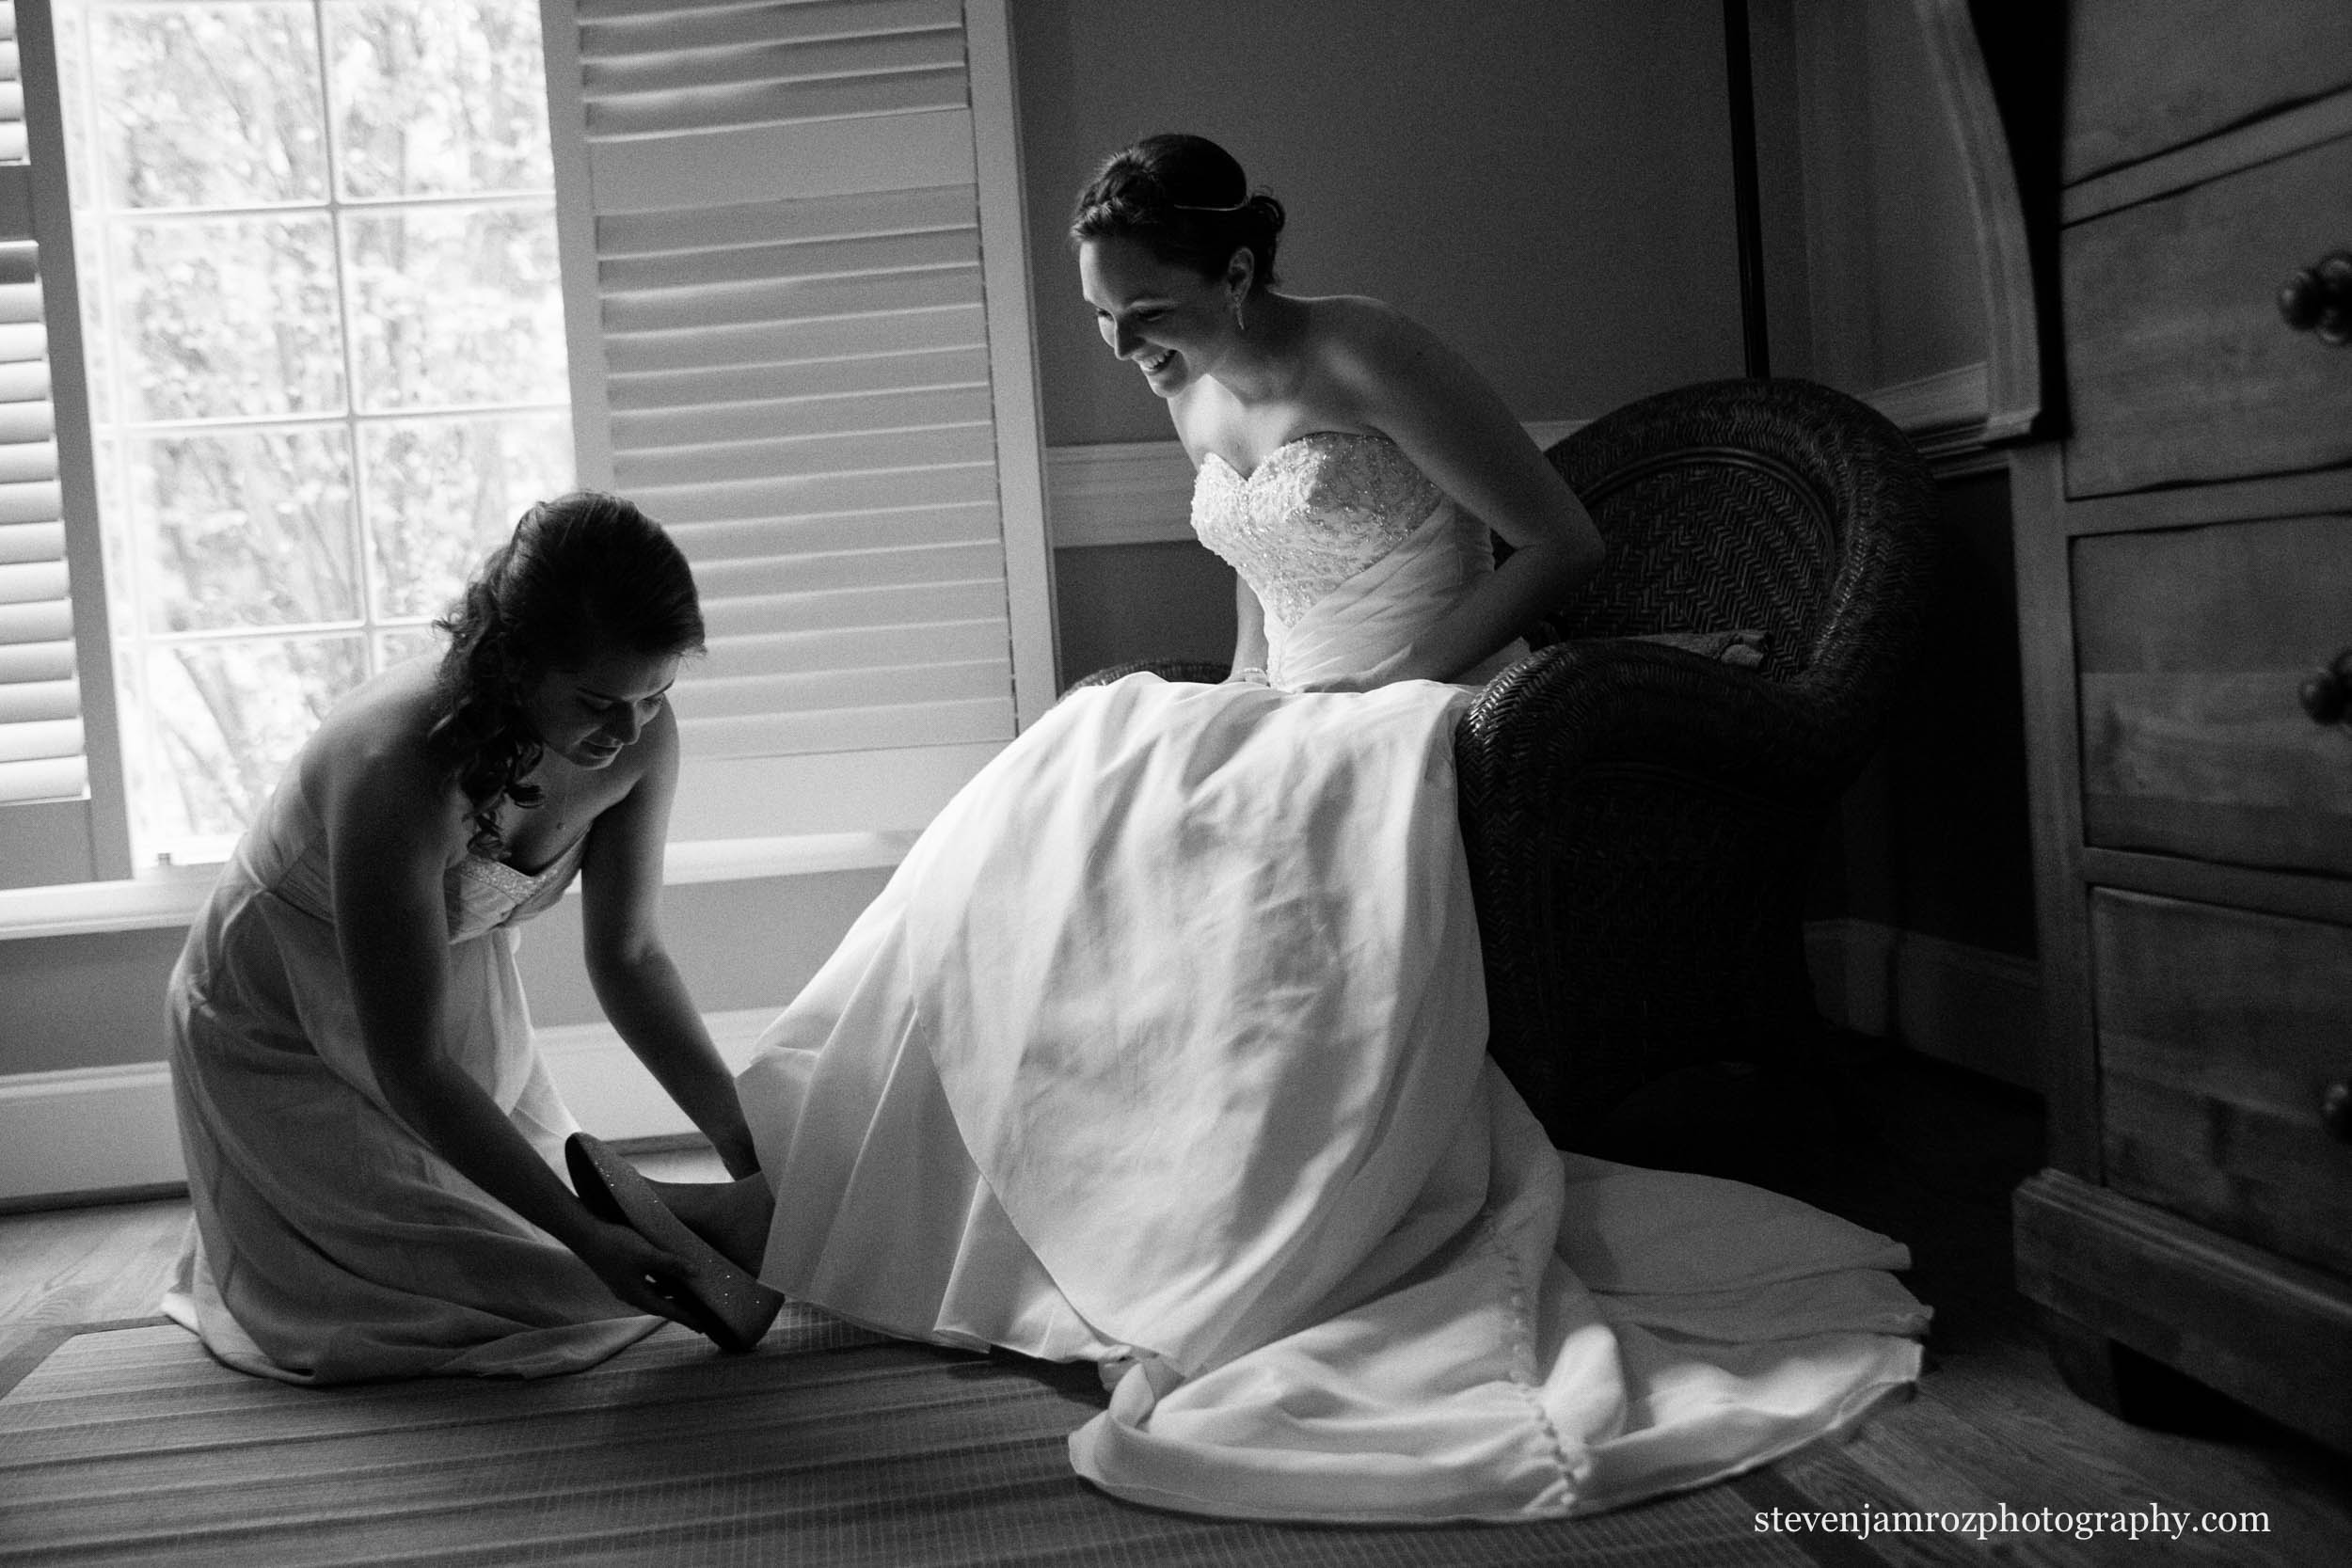 almost-ready-to-get-married-wake-forest-steven-jamroz-photography-0504.jpg